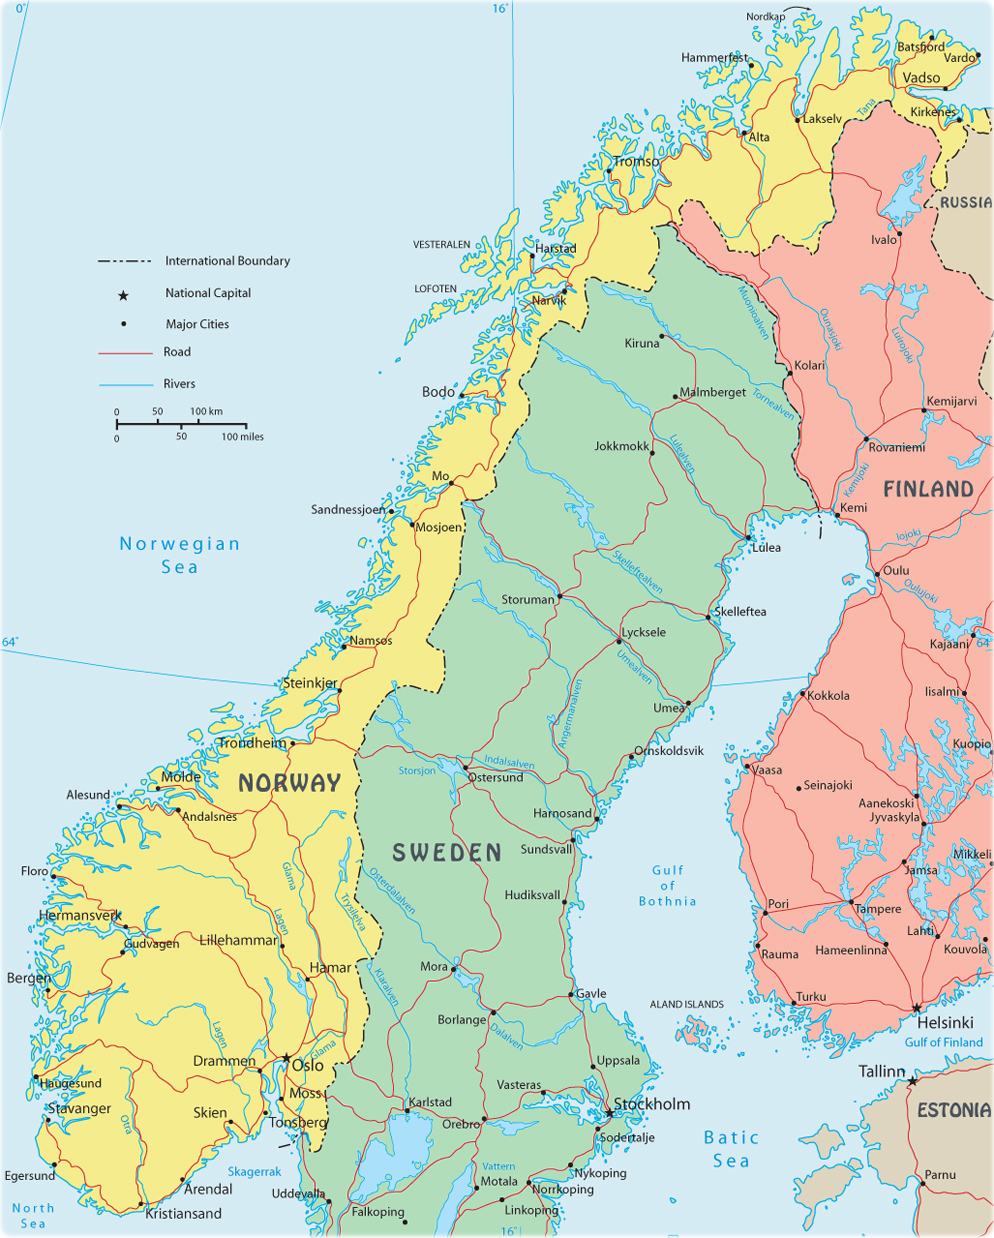 Map Norway on map of marginal seas, map of l'anse aux meadows, map of humboldt current, map of the arctic ocean, map of gulf of mexico, map of kiev, map of gulf of aden, map of bergen, map of narvik, map of upper peninsula of michigan, map of oslo, map of norway, map of arctic circle, map of strait of malacca, map of gulf of venezuela, map of dardanelles, map of fernando de noronha, map of bay of biscay, map of persian gulf, map of english channel,